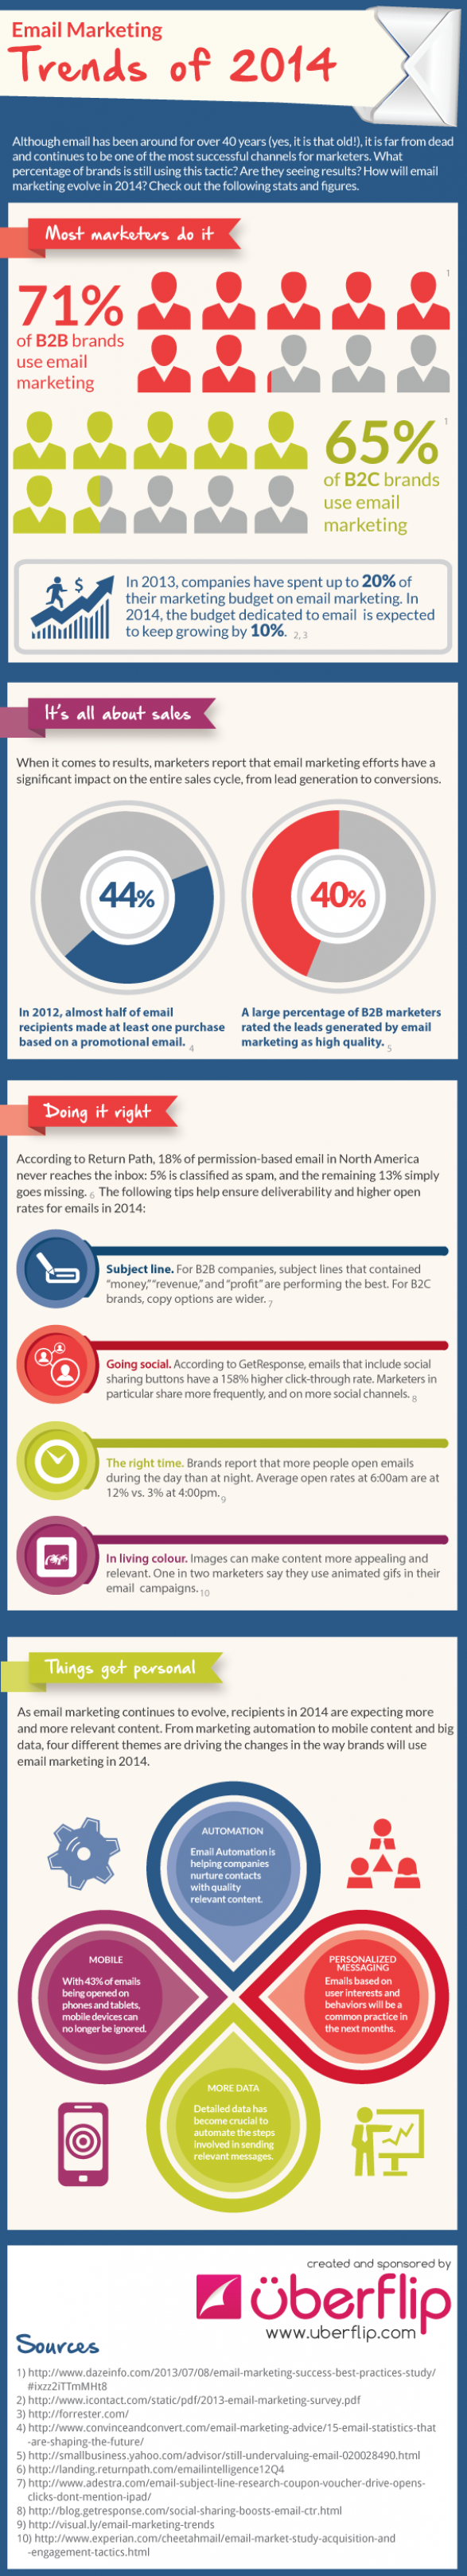 Infographic: Email Marketing Trends In 2014